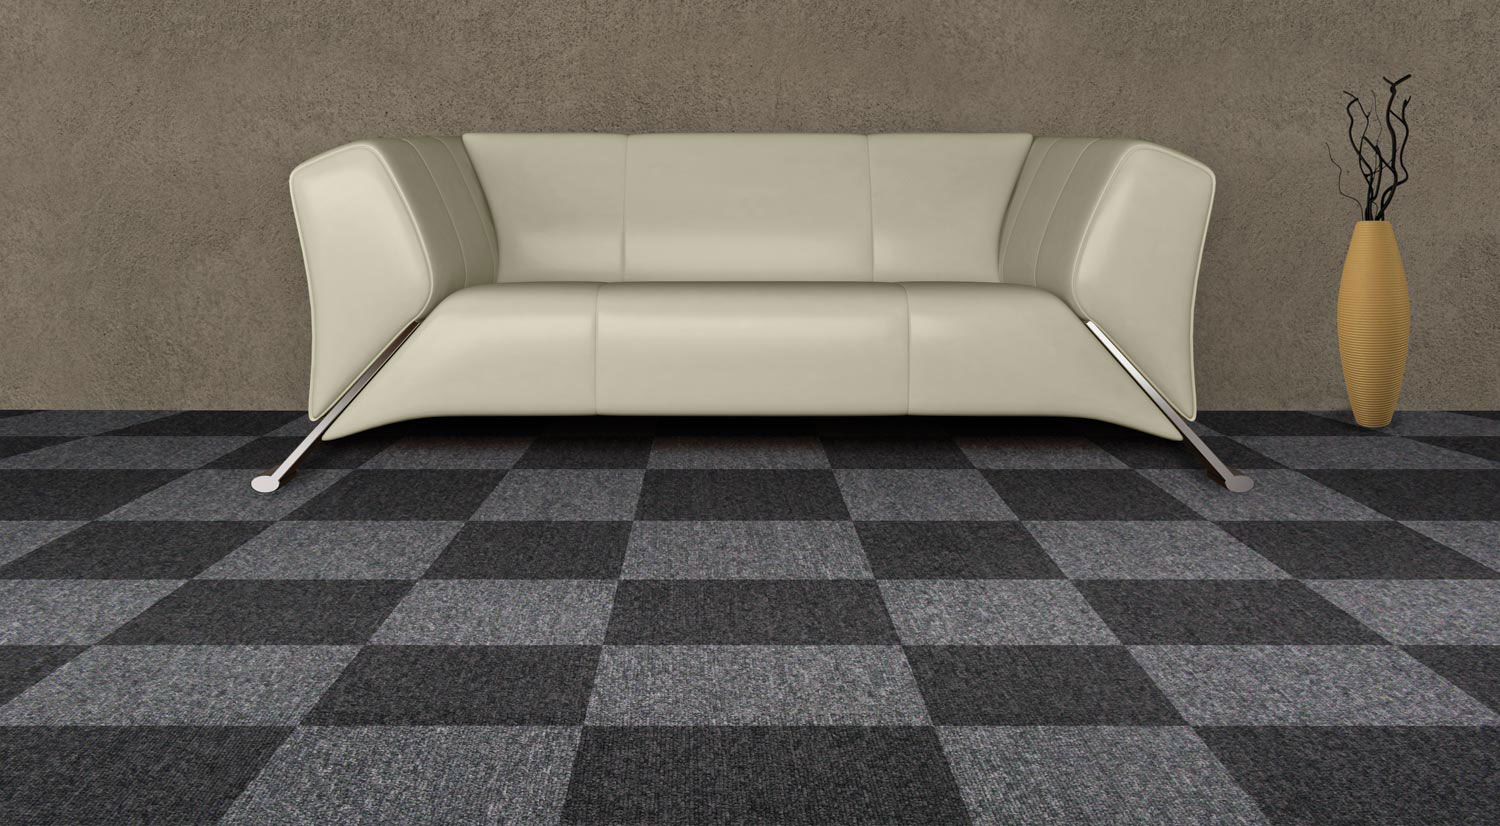 What Are Carpet Tiles and PVC Exactly?